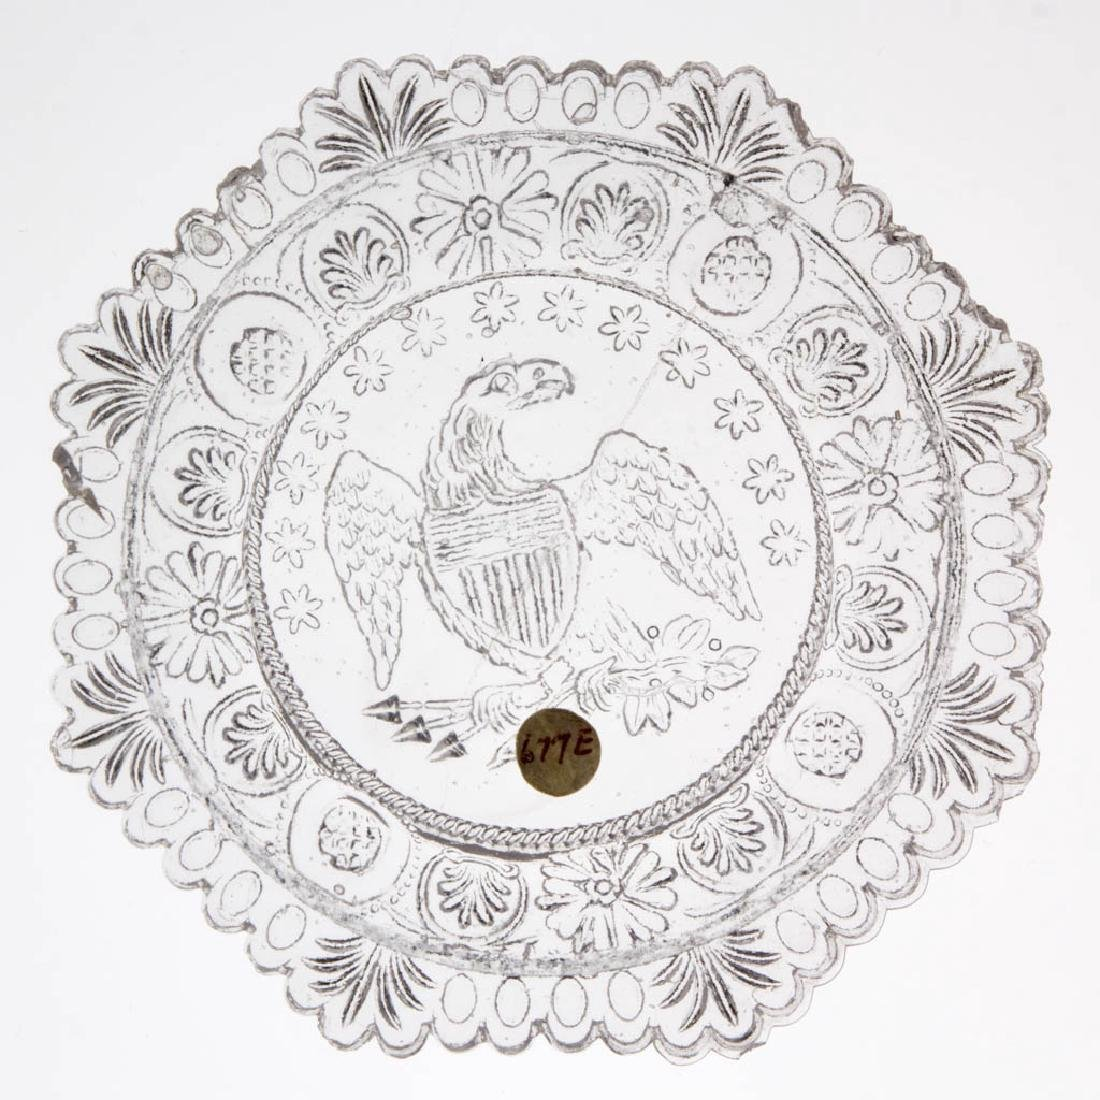 LEE/ROSE NO. 677-E CUP PLATE